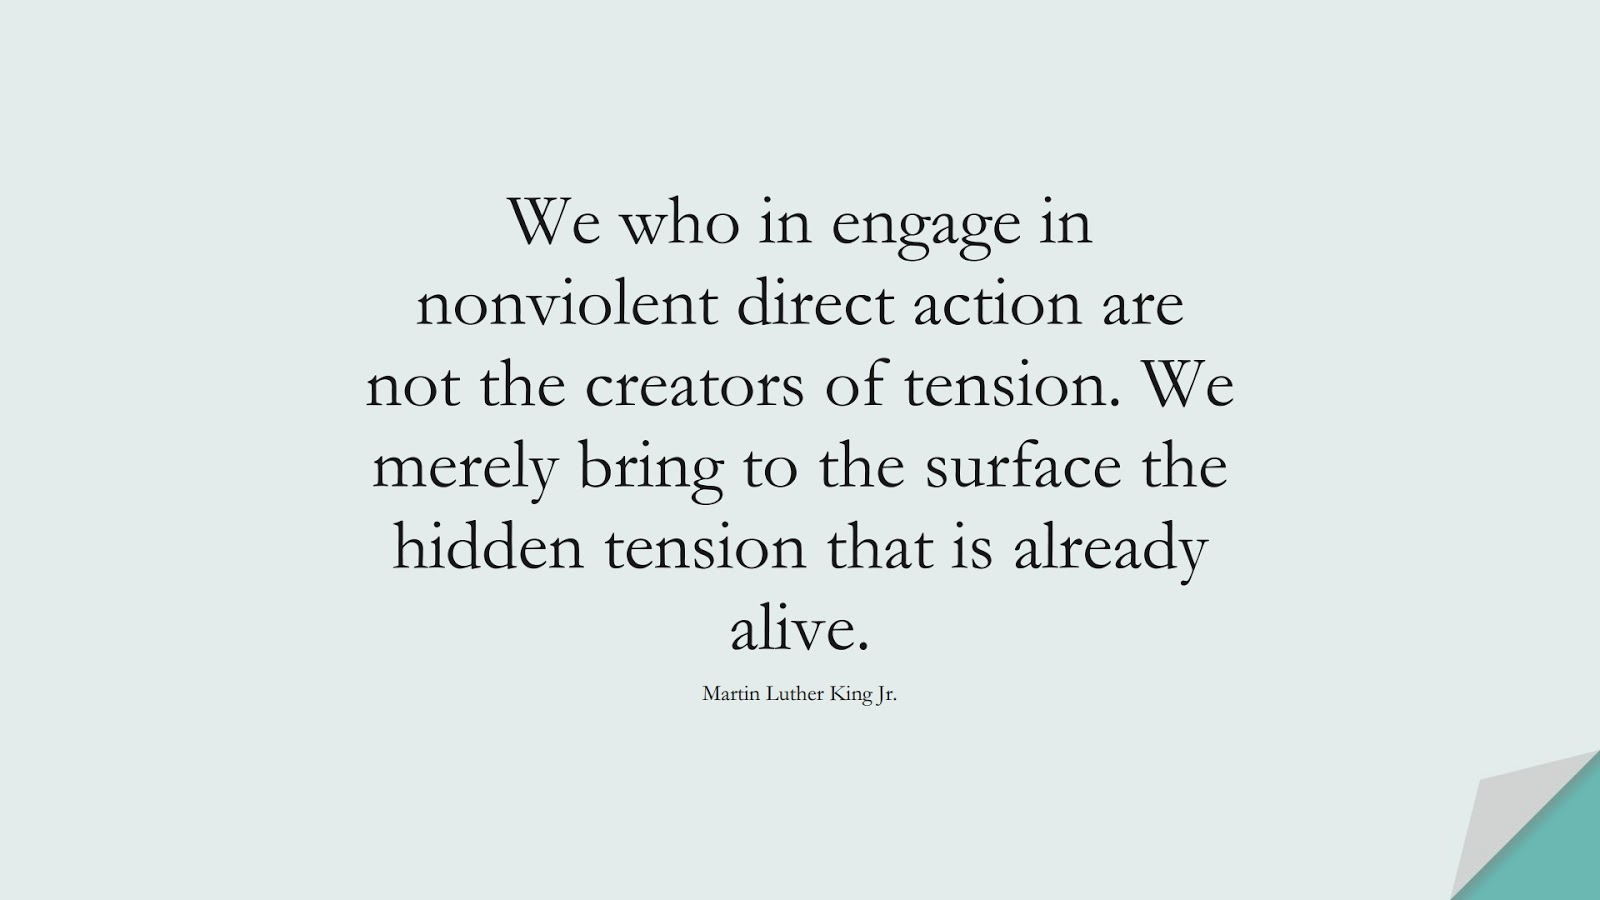 We who in engage in nonviolent direct action are not the creators of tension. We merely bring to the surface the hidden tension that is already alive. (Martin Luther King Jr.);  #MartinLutherKingJrQuotes